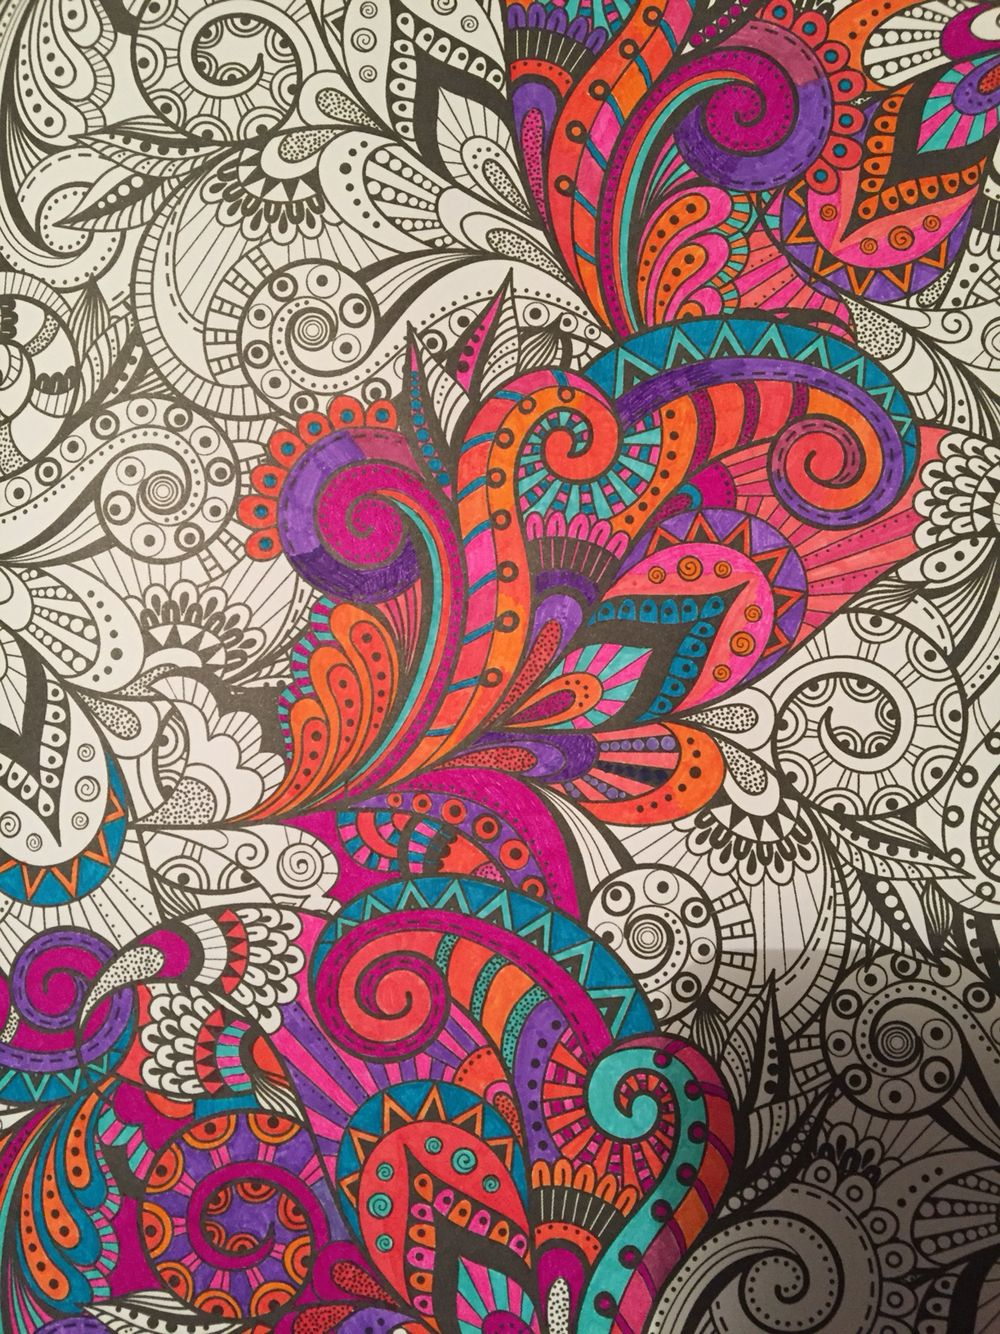 Creative Therapy Colouring Book | Coloring pages | Pinterest ...